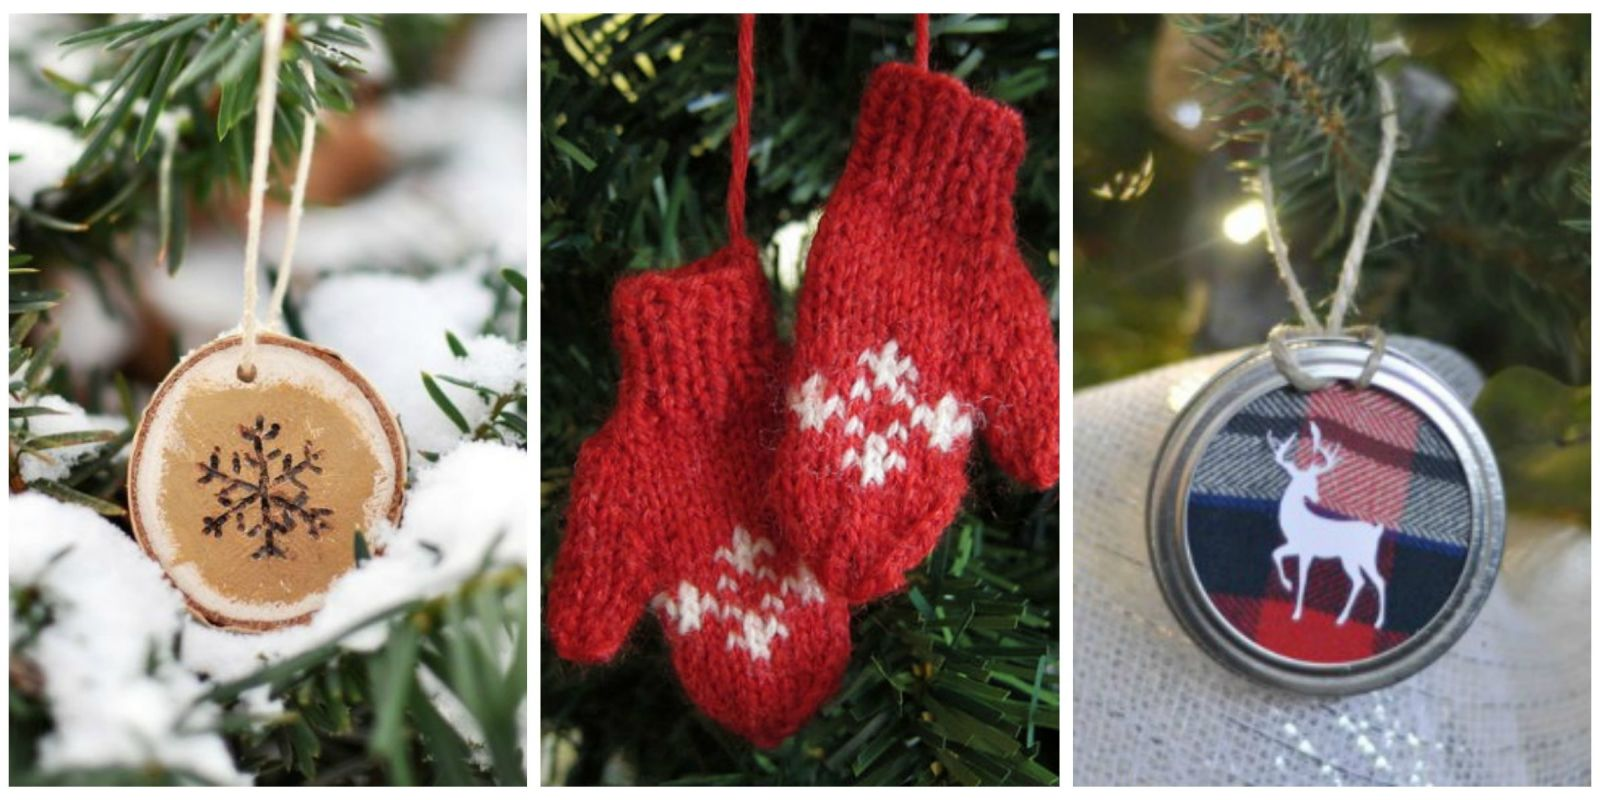 50 homemade christmas ornaments diy crafts with for Homemade tree decorations